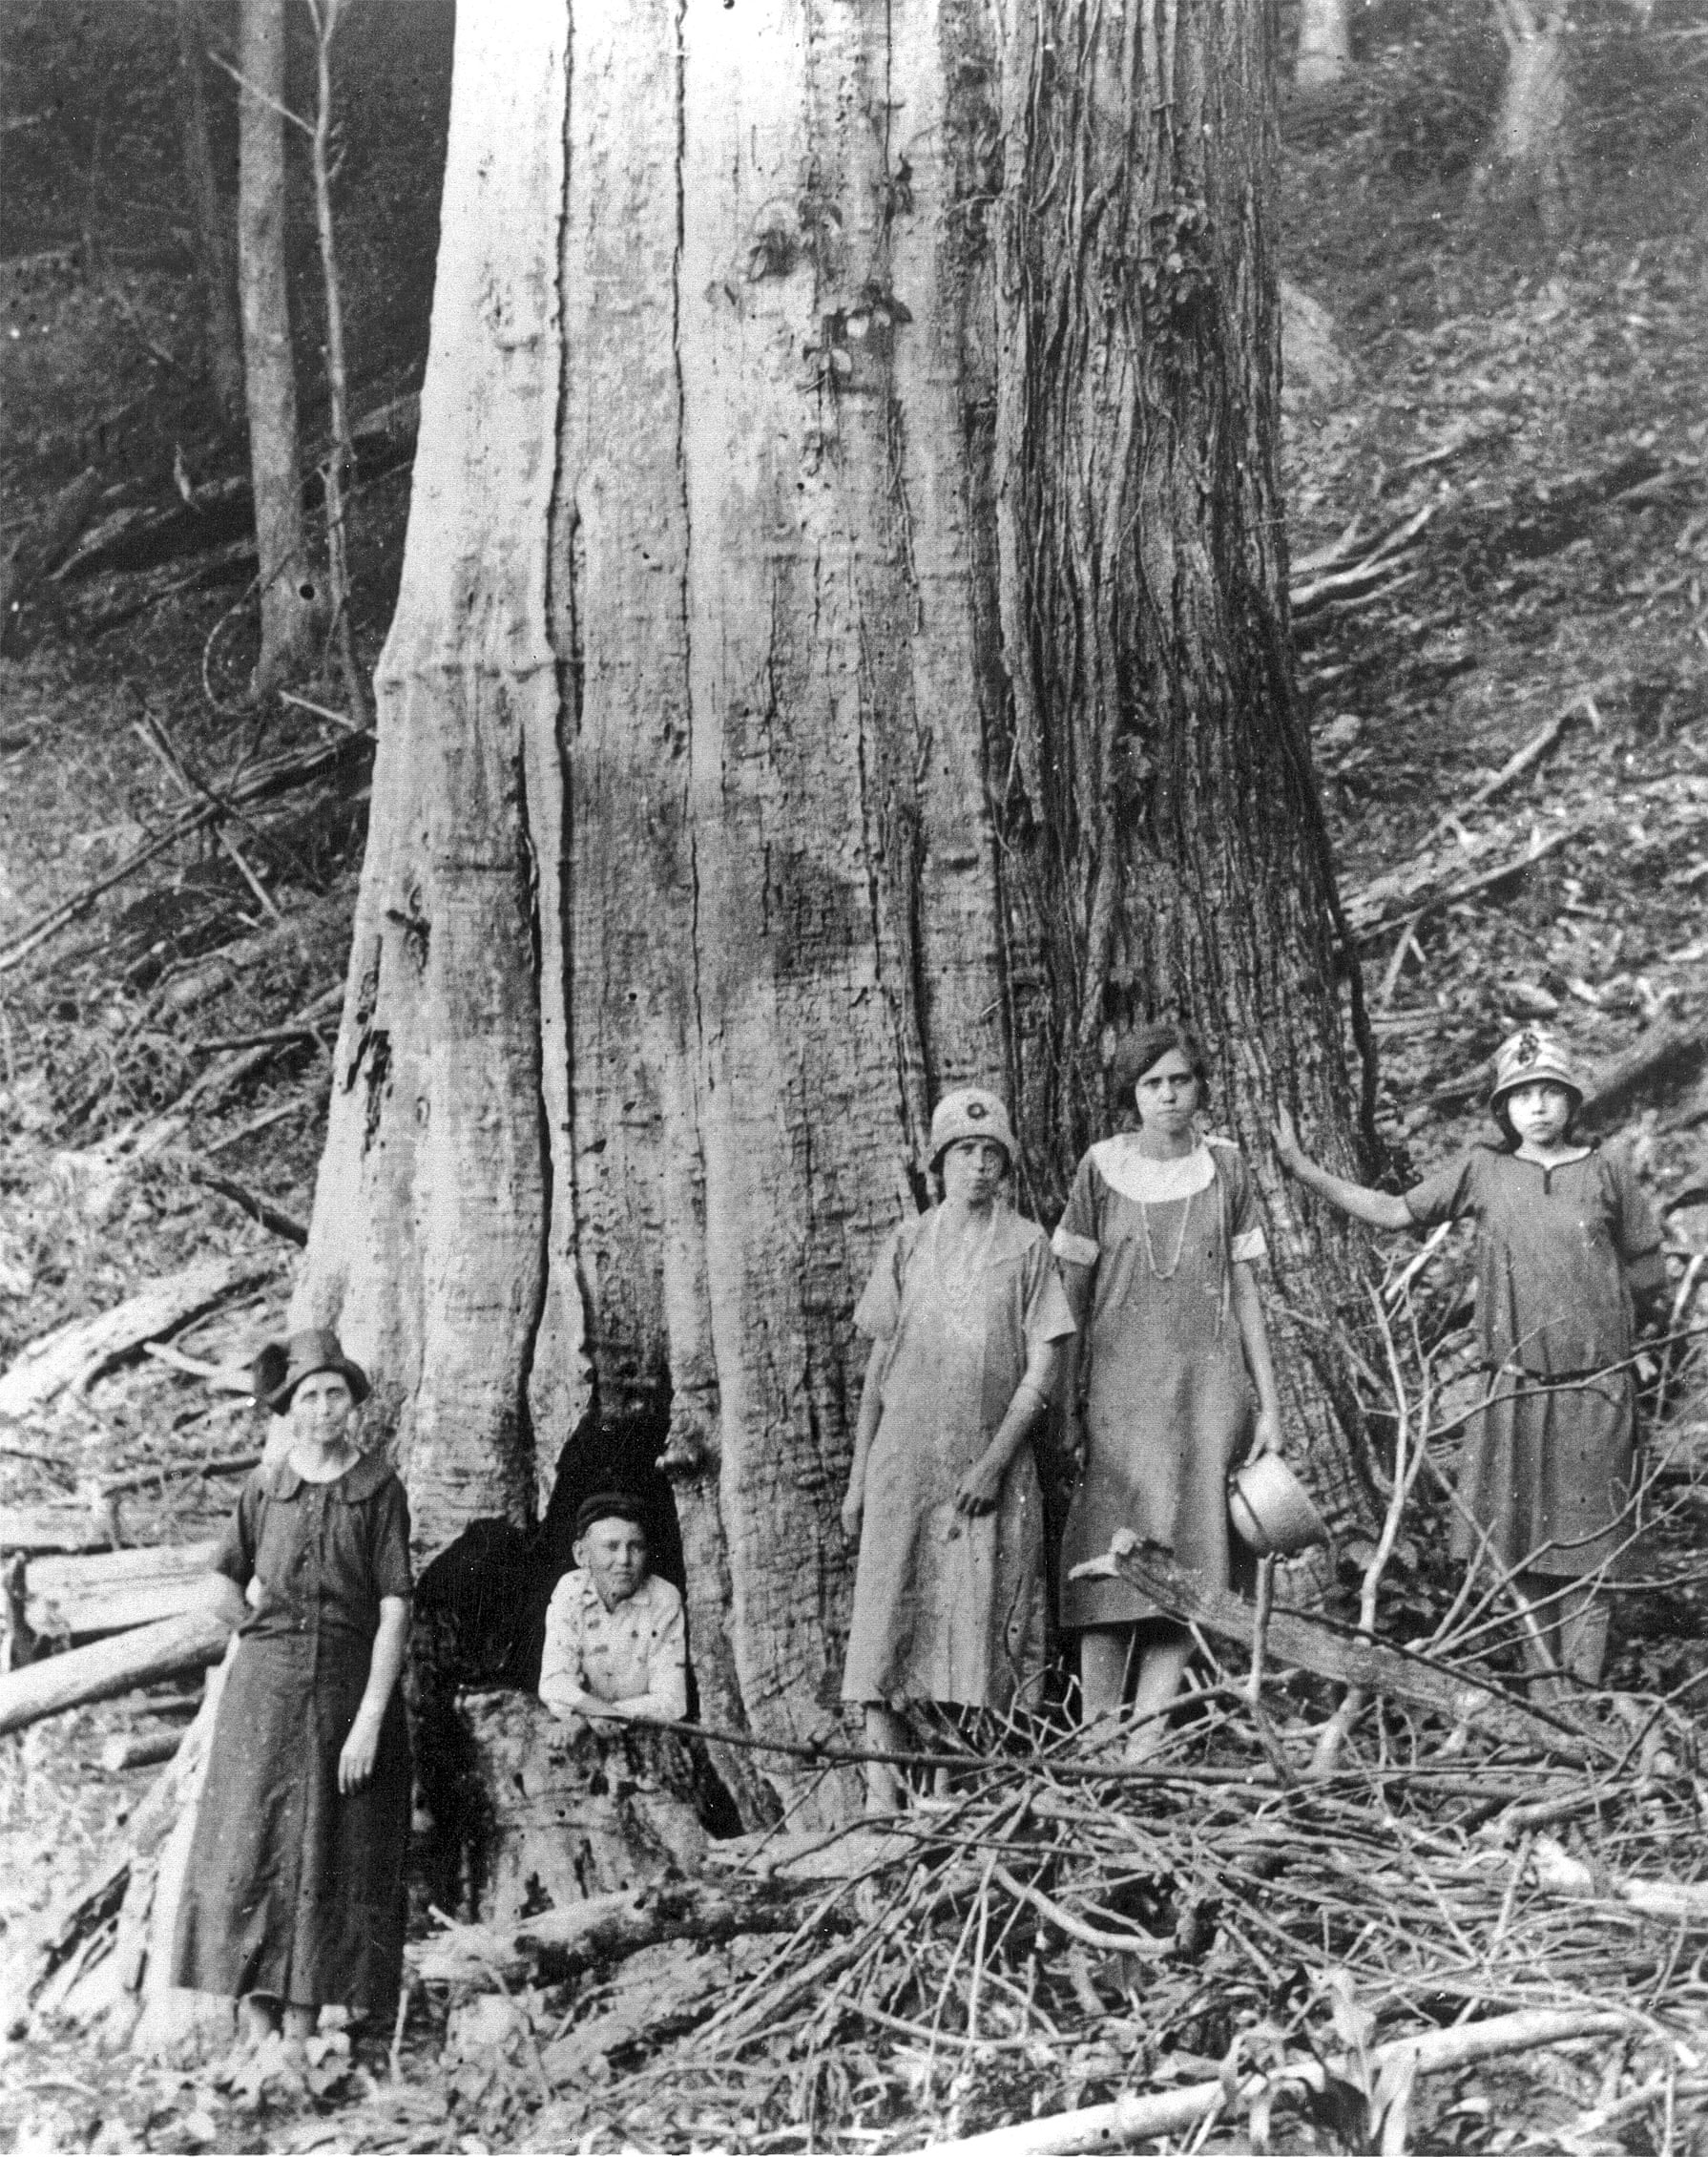 A blight-killed American chestnut in Tennessee, 1920. Great Smoky Mountains National Park